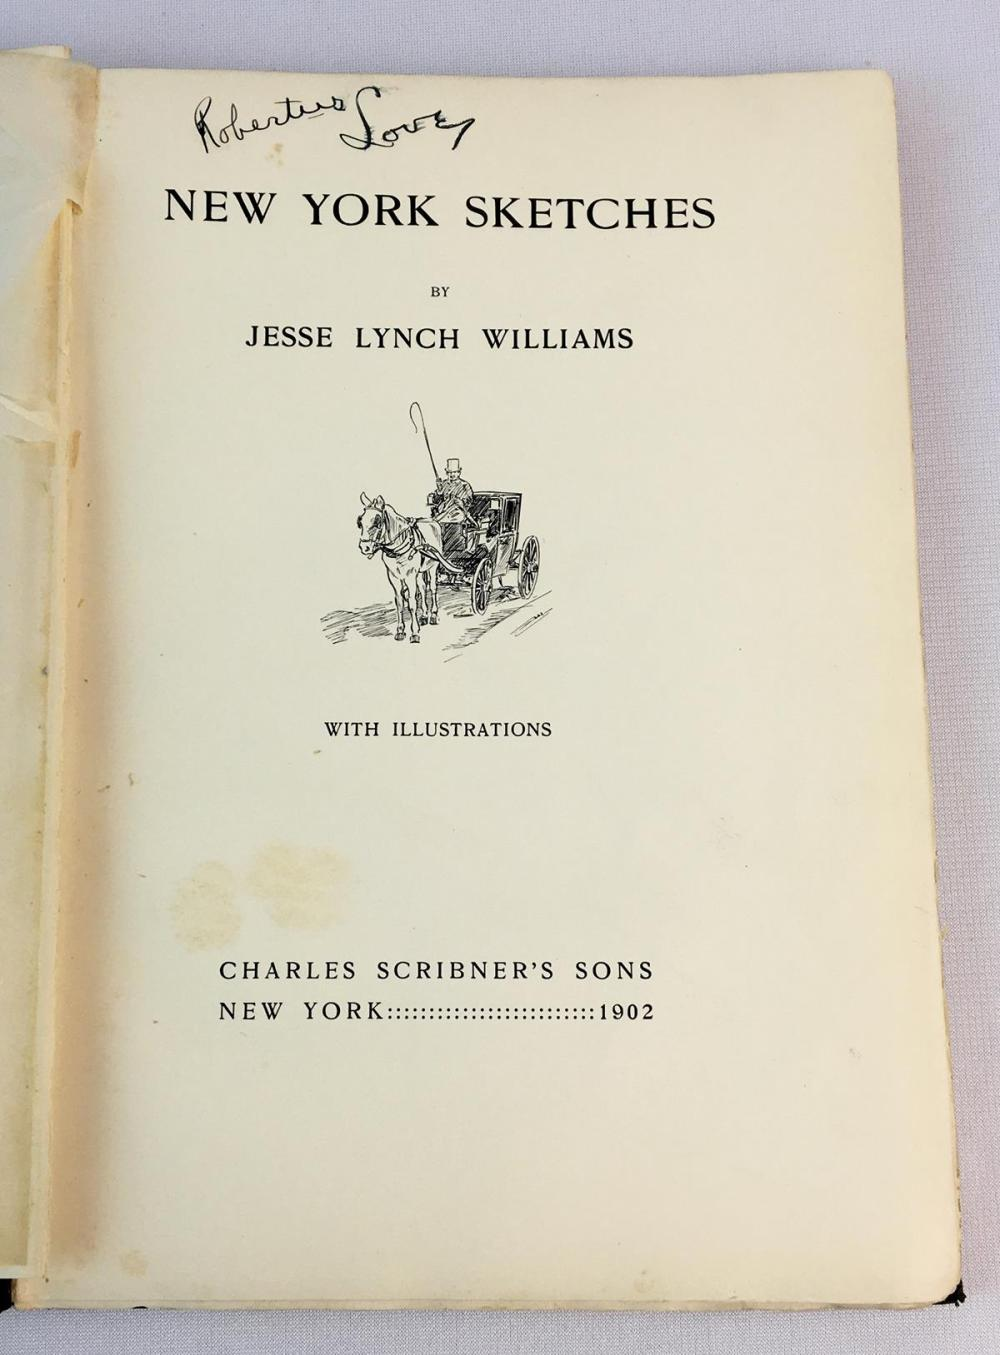 1902 New York Sketches by Jesse Lynch Williams Illustrated FIRST EDITION